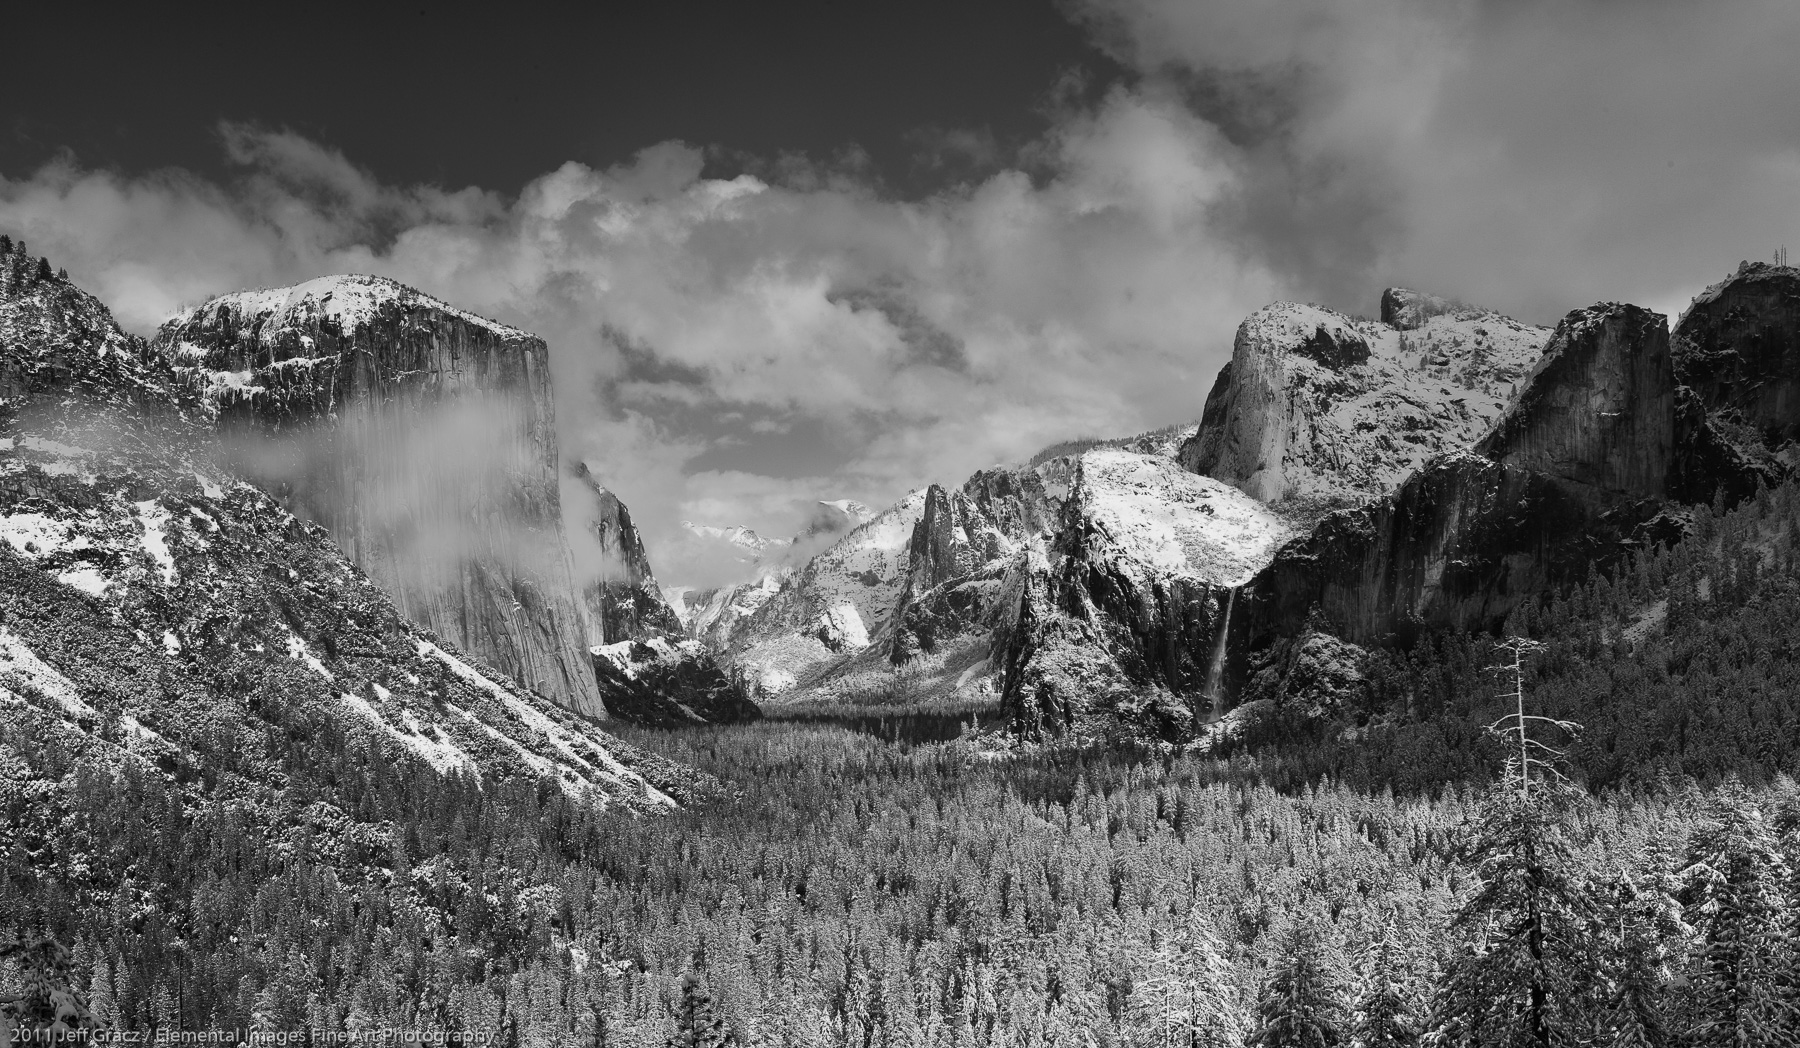 Yosemite Valley with Clearing Storm | Yosemite National Park | CA | USA - © 2011 Jeff Gracz / Elemental Images Fine Art Photography - All Rights Reserved Worldwide